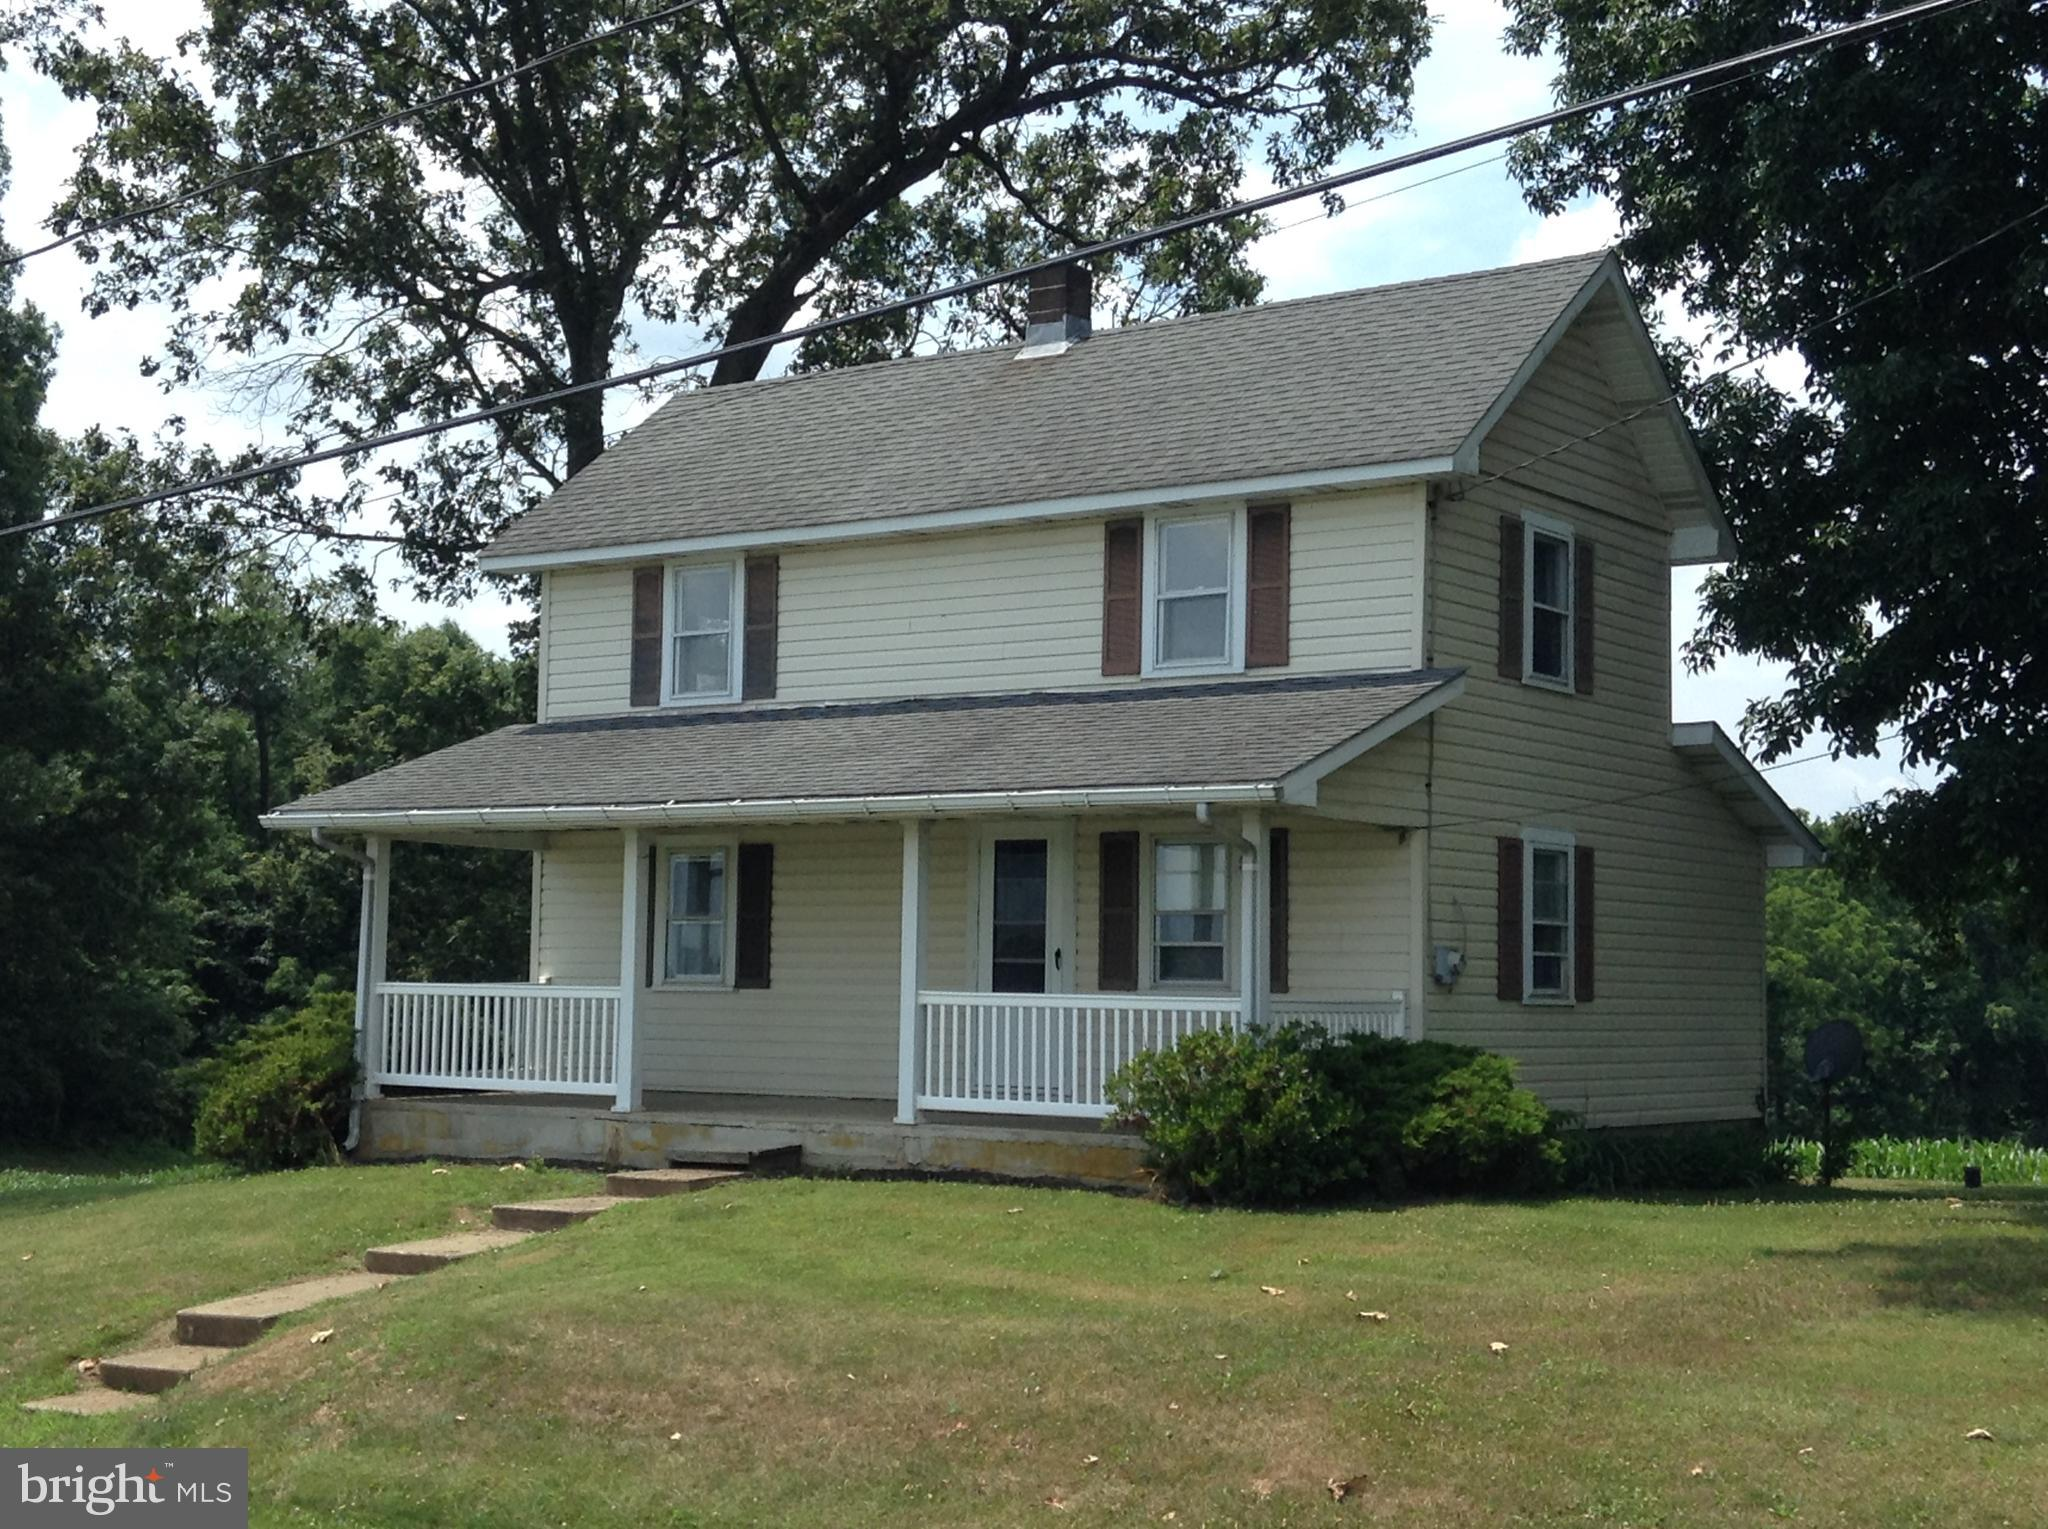 5244 FAWN GROVE ROAD, PYLESVILLE, MD 21132